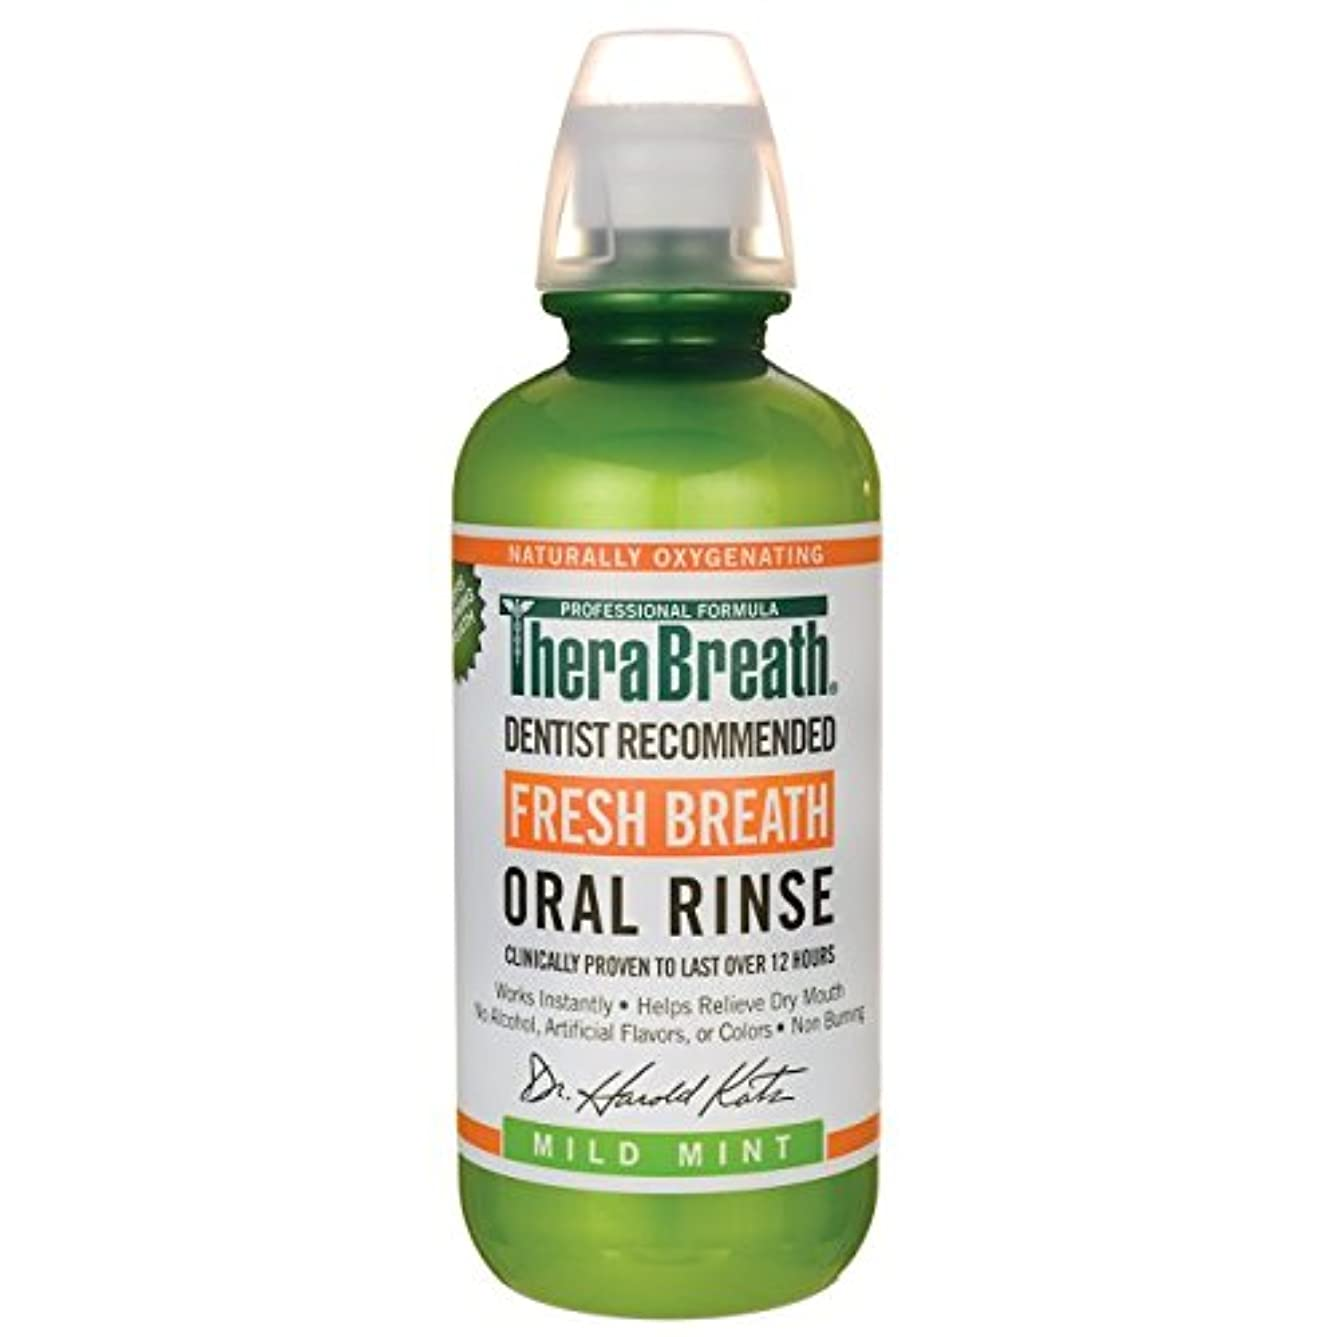 満員冗談で差し引く海外直送肘 Therabreath Fresh Breath Oral Rinse Mild, 16 oz